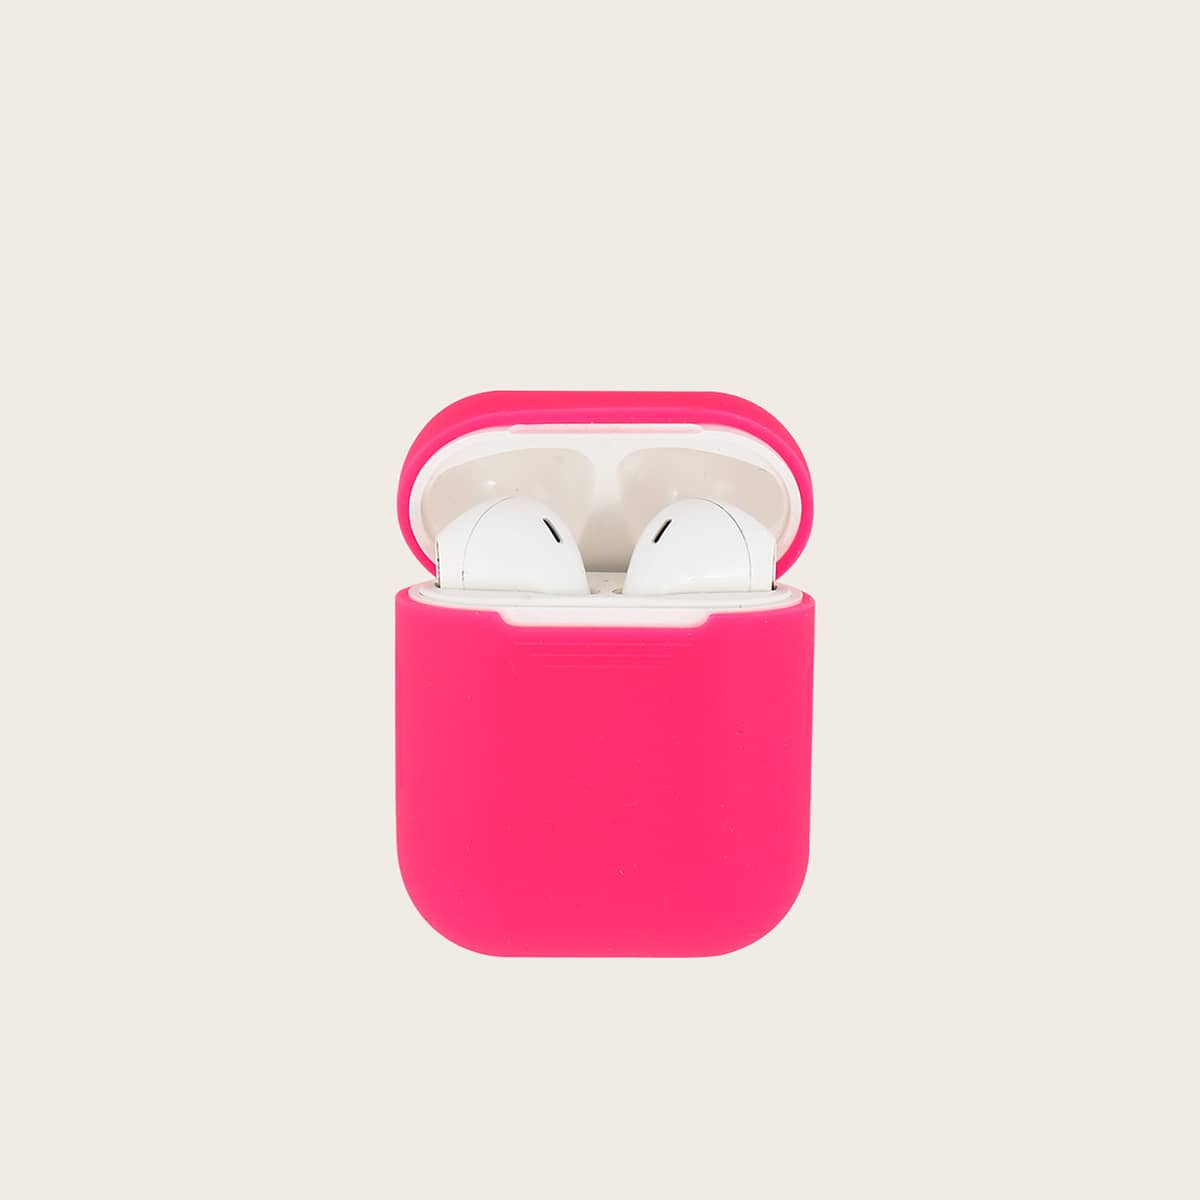 Neon Pink Airpods Charger Box Protector